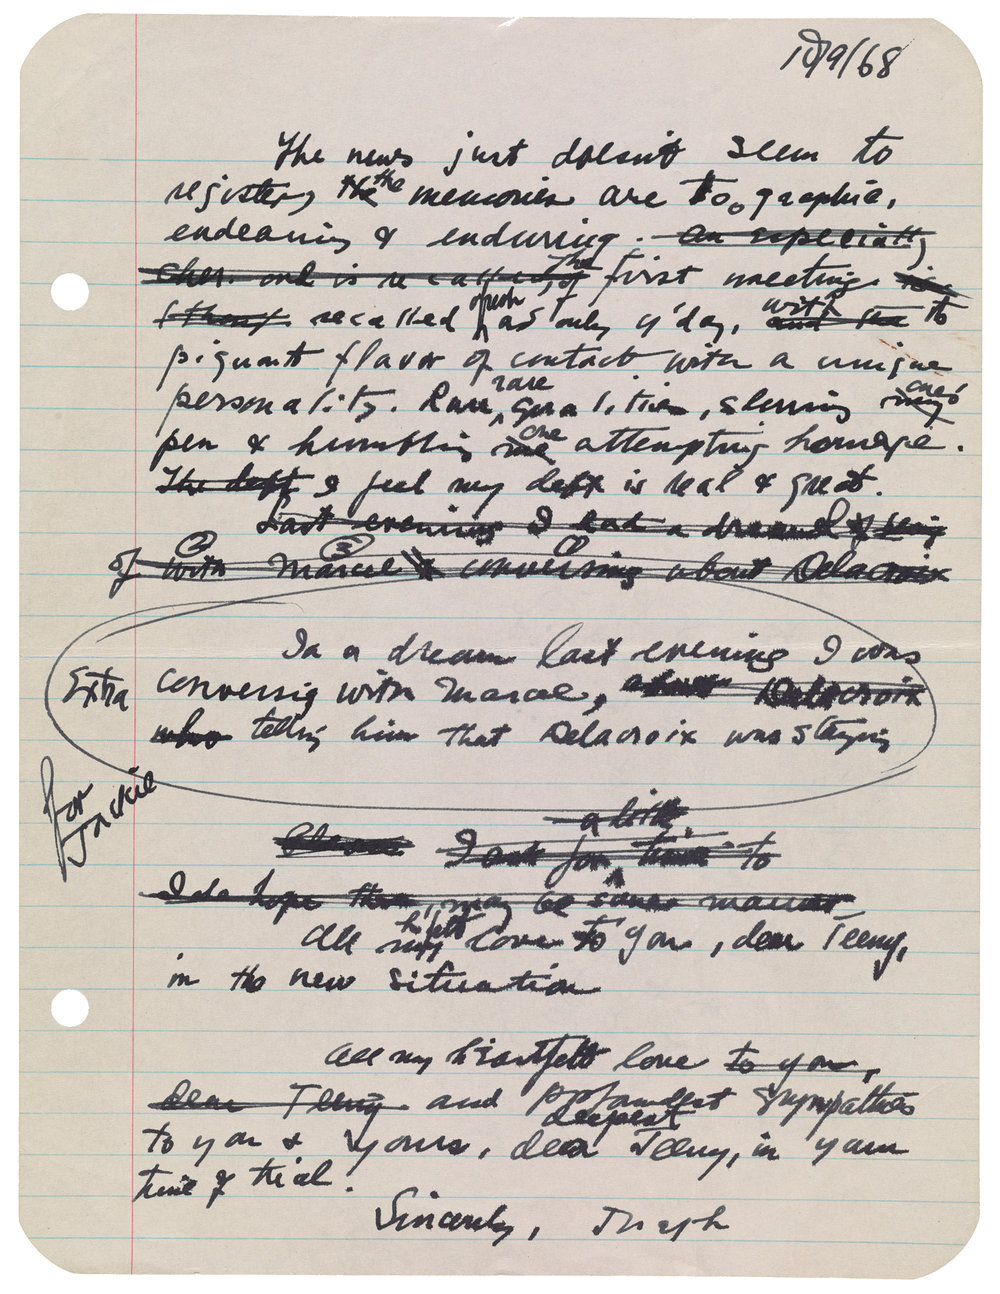 Joseph Cornell (48), draft of letter to Teeny Duchamp, October 8-9, 1968